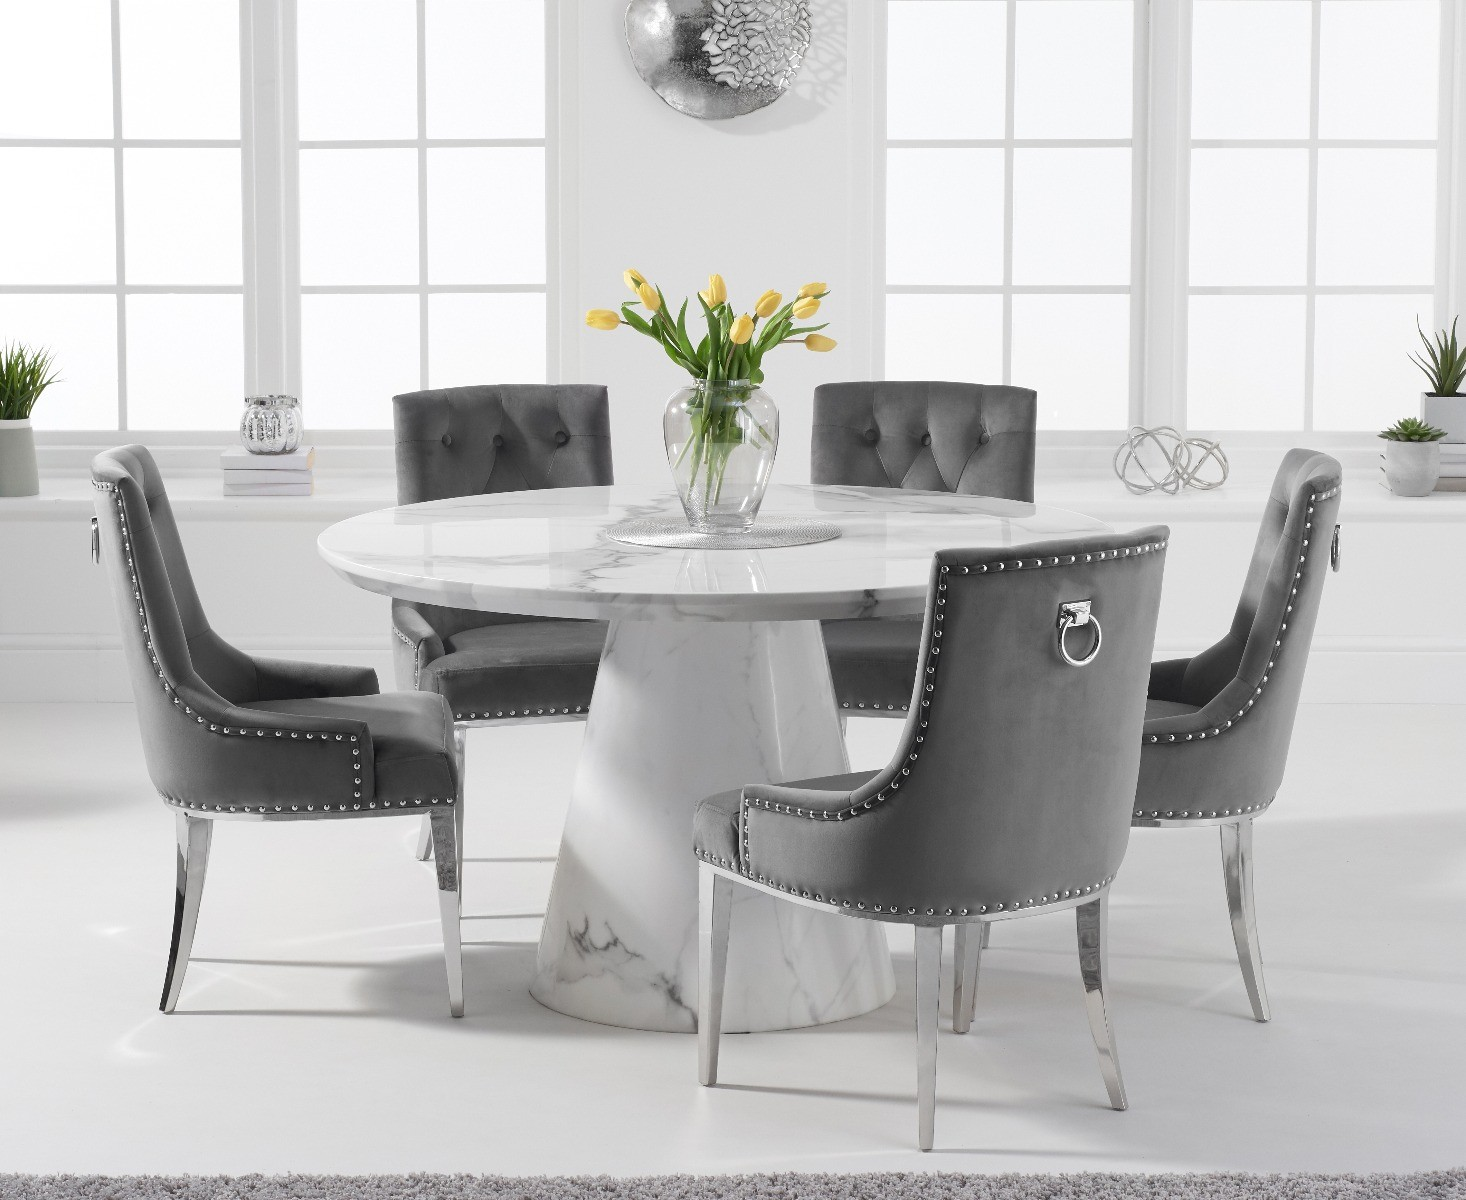 Ravello 9cm Round White Marble Dining Table with Talia Velvet Chairs